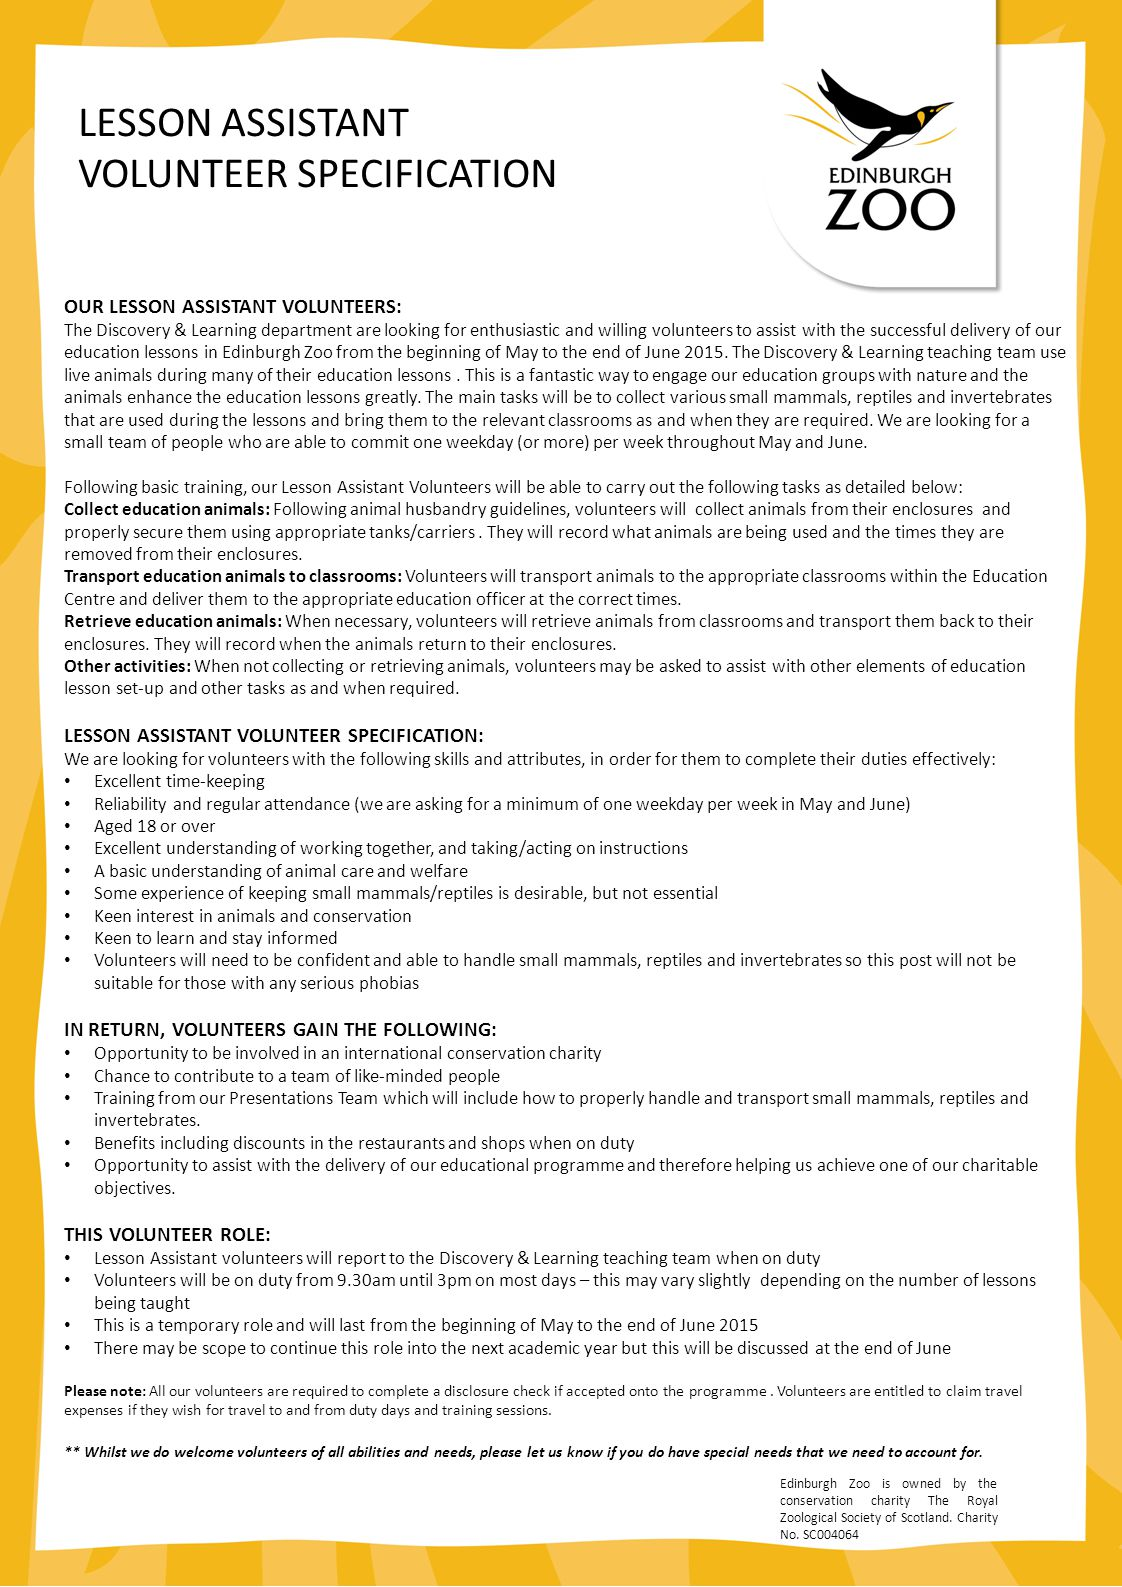 LESSON ASSISTANT VOLUNTEER SPECIFICATION OUR LESSON ASSISTANT VOLUNTEERS: The Discovery & Learning department are looking for enthusiastic and willing volunteers to assist with the successful delivery of our education lessons in Edinburgh Zoo from the beginning of May to the end of June 2015.